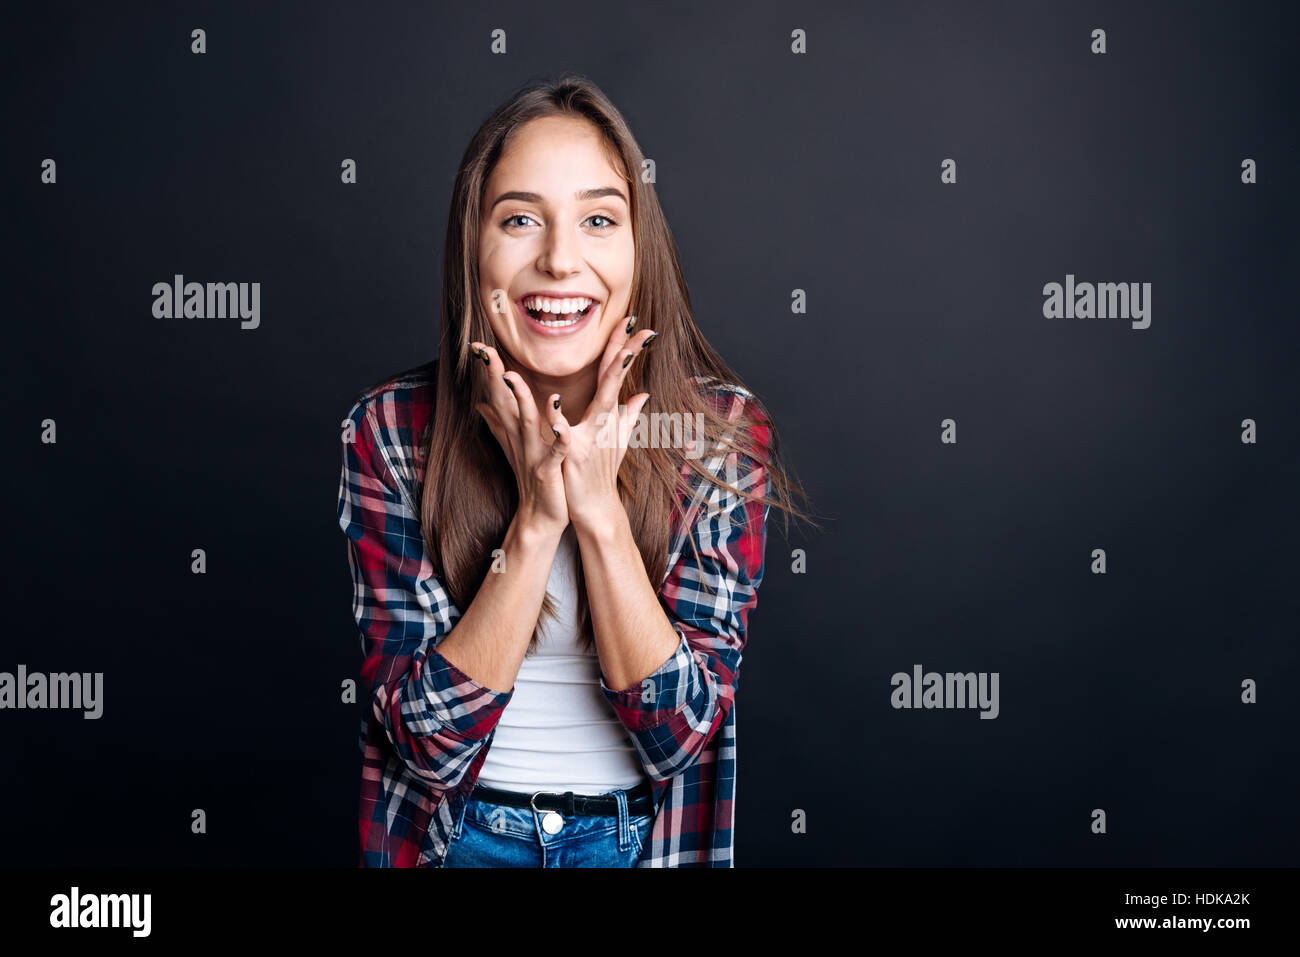 Positive woman expressing gladness - Stock Image